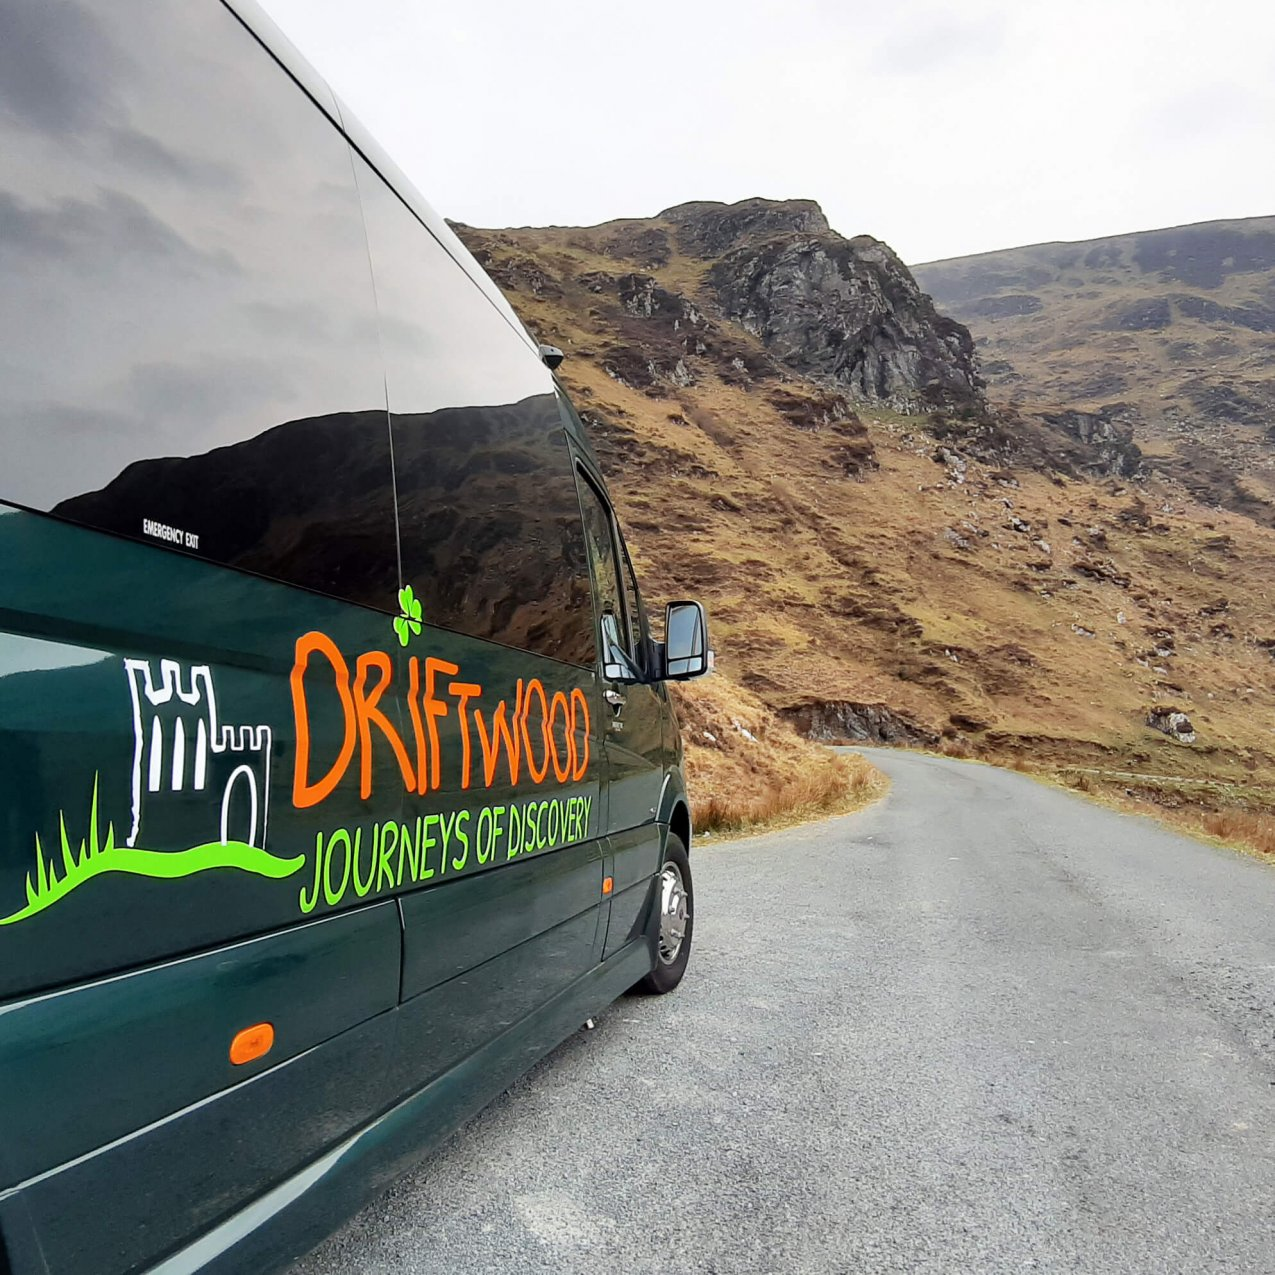 Side view of a Drifter tour vehicle on the Granny Pass in Donegal